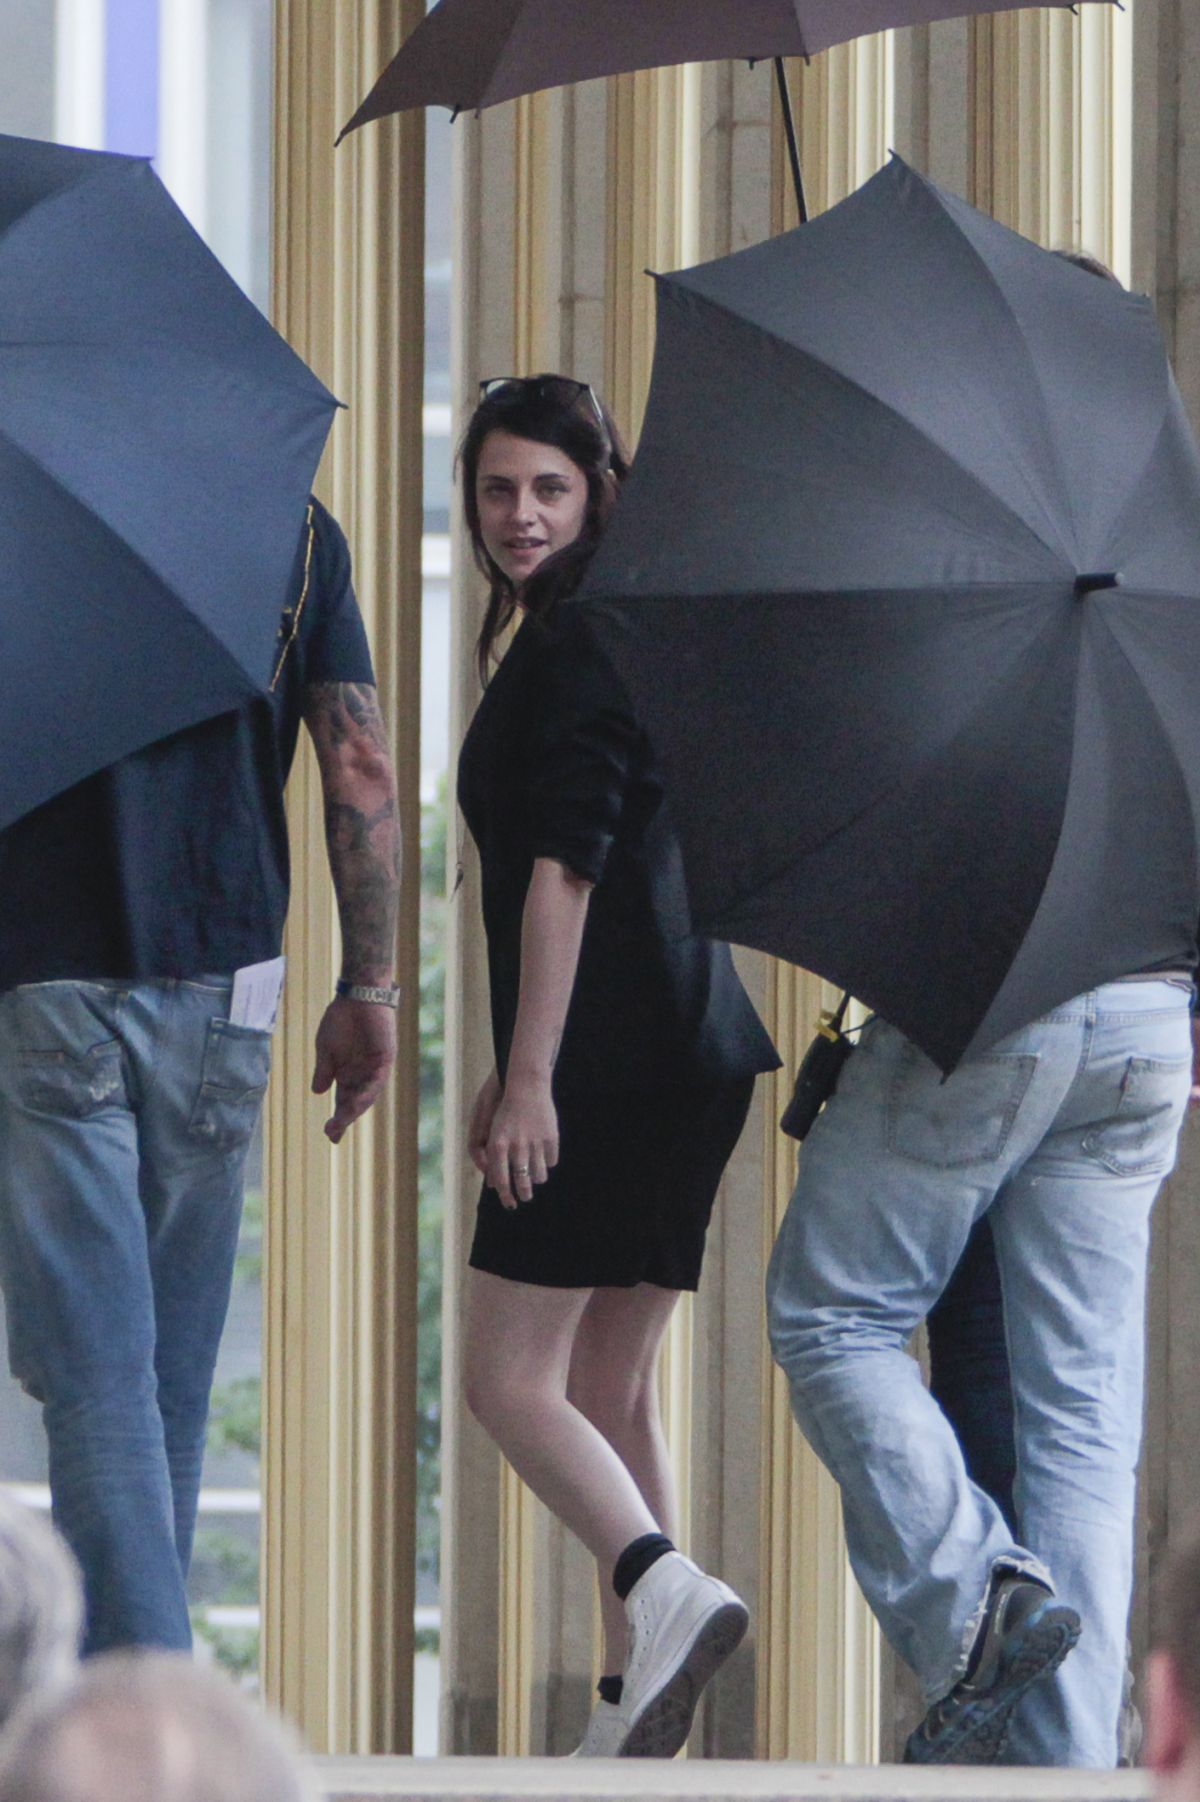 Kristen Stewart On The Set Of Sils Maria In Leipzig